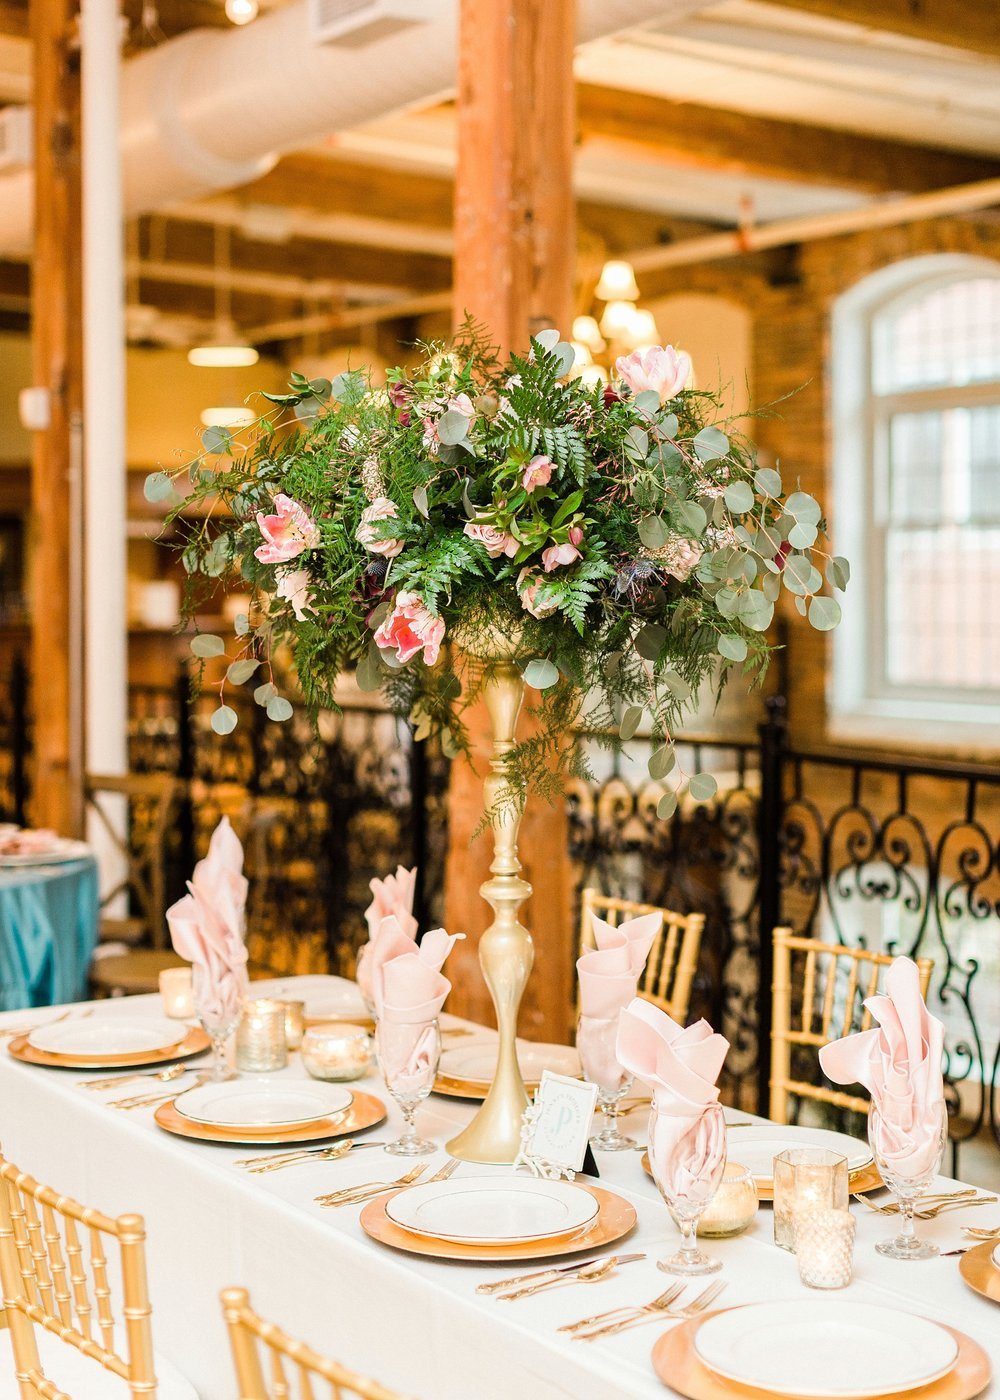 Photo by Annie Timmons Photography, Flowers by Jenny's Projects, Rentals by Party Reflections